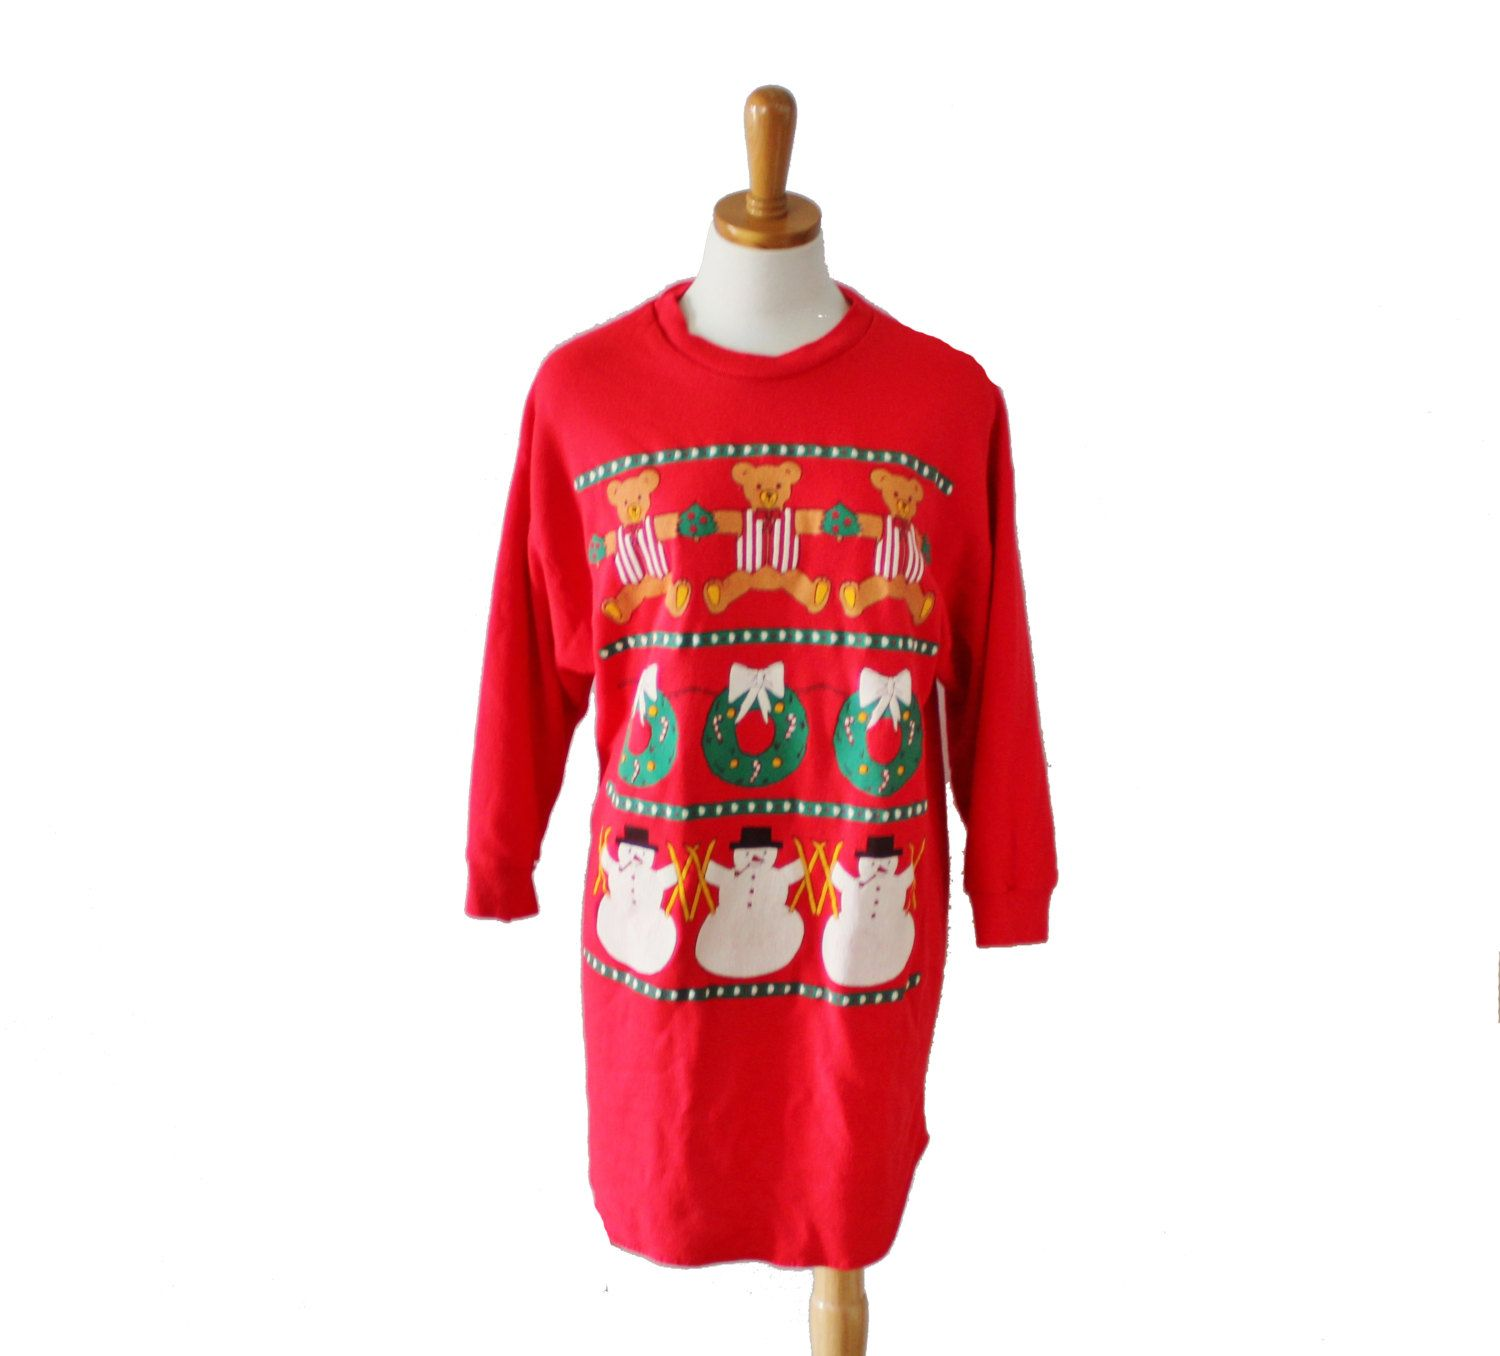 Vintage Ugly Christmas Sweater Dress Red Novelty Sweatshirt Nightgown Women